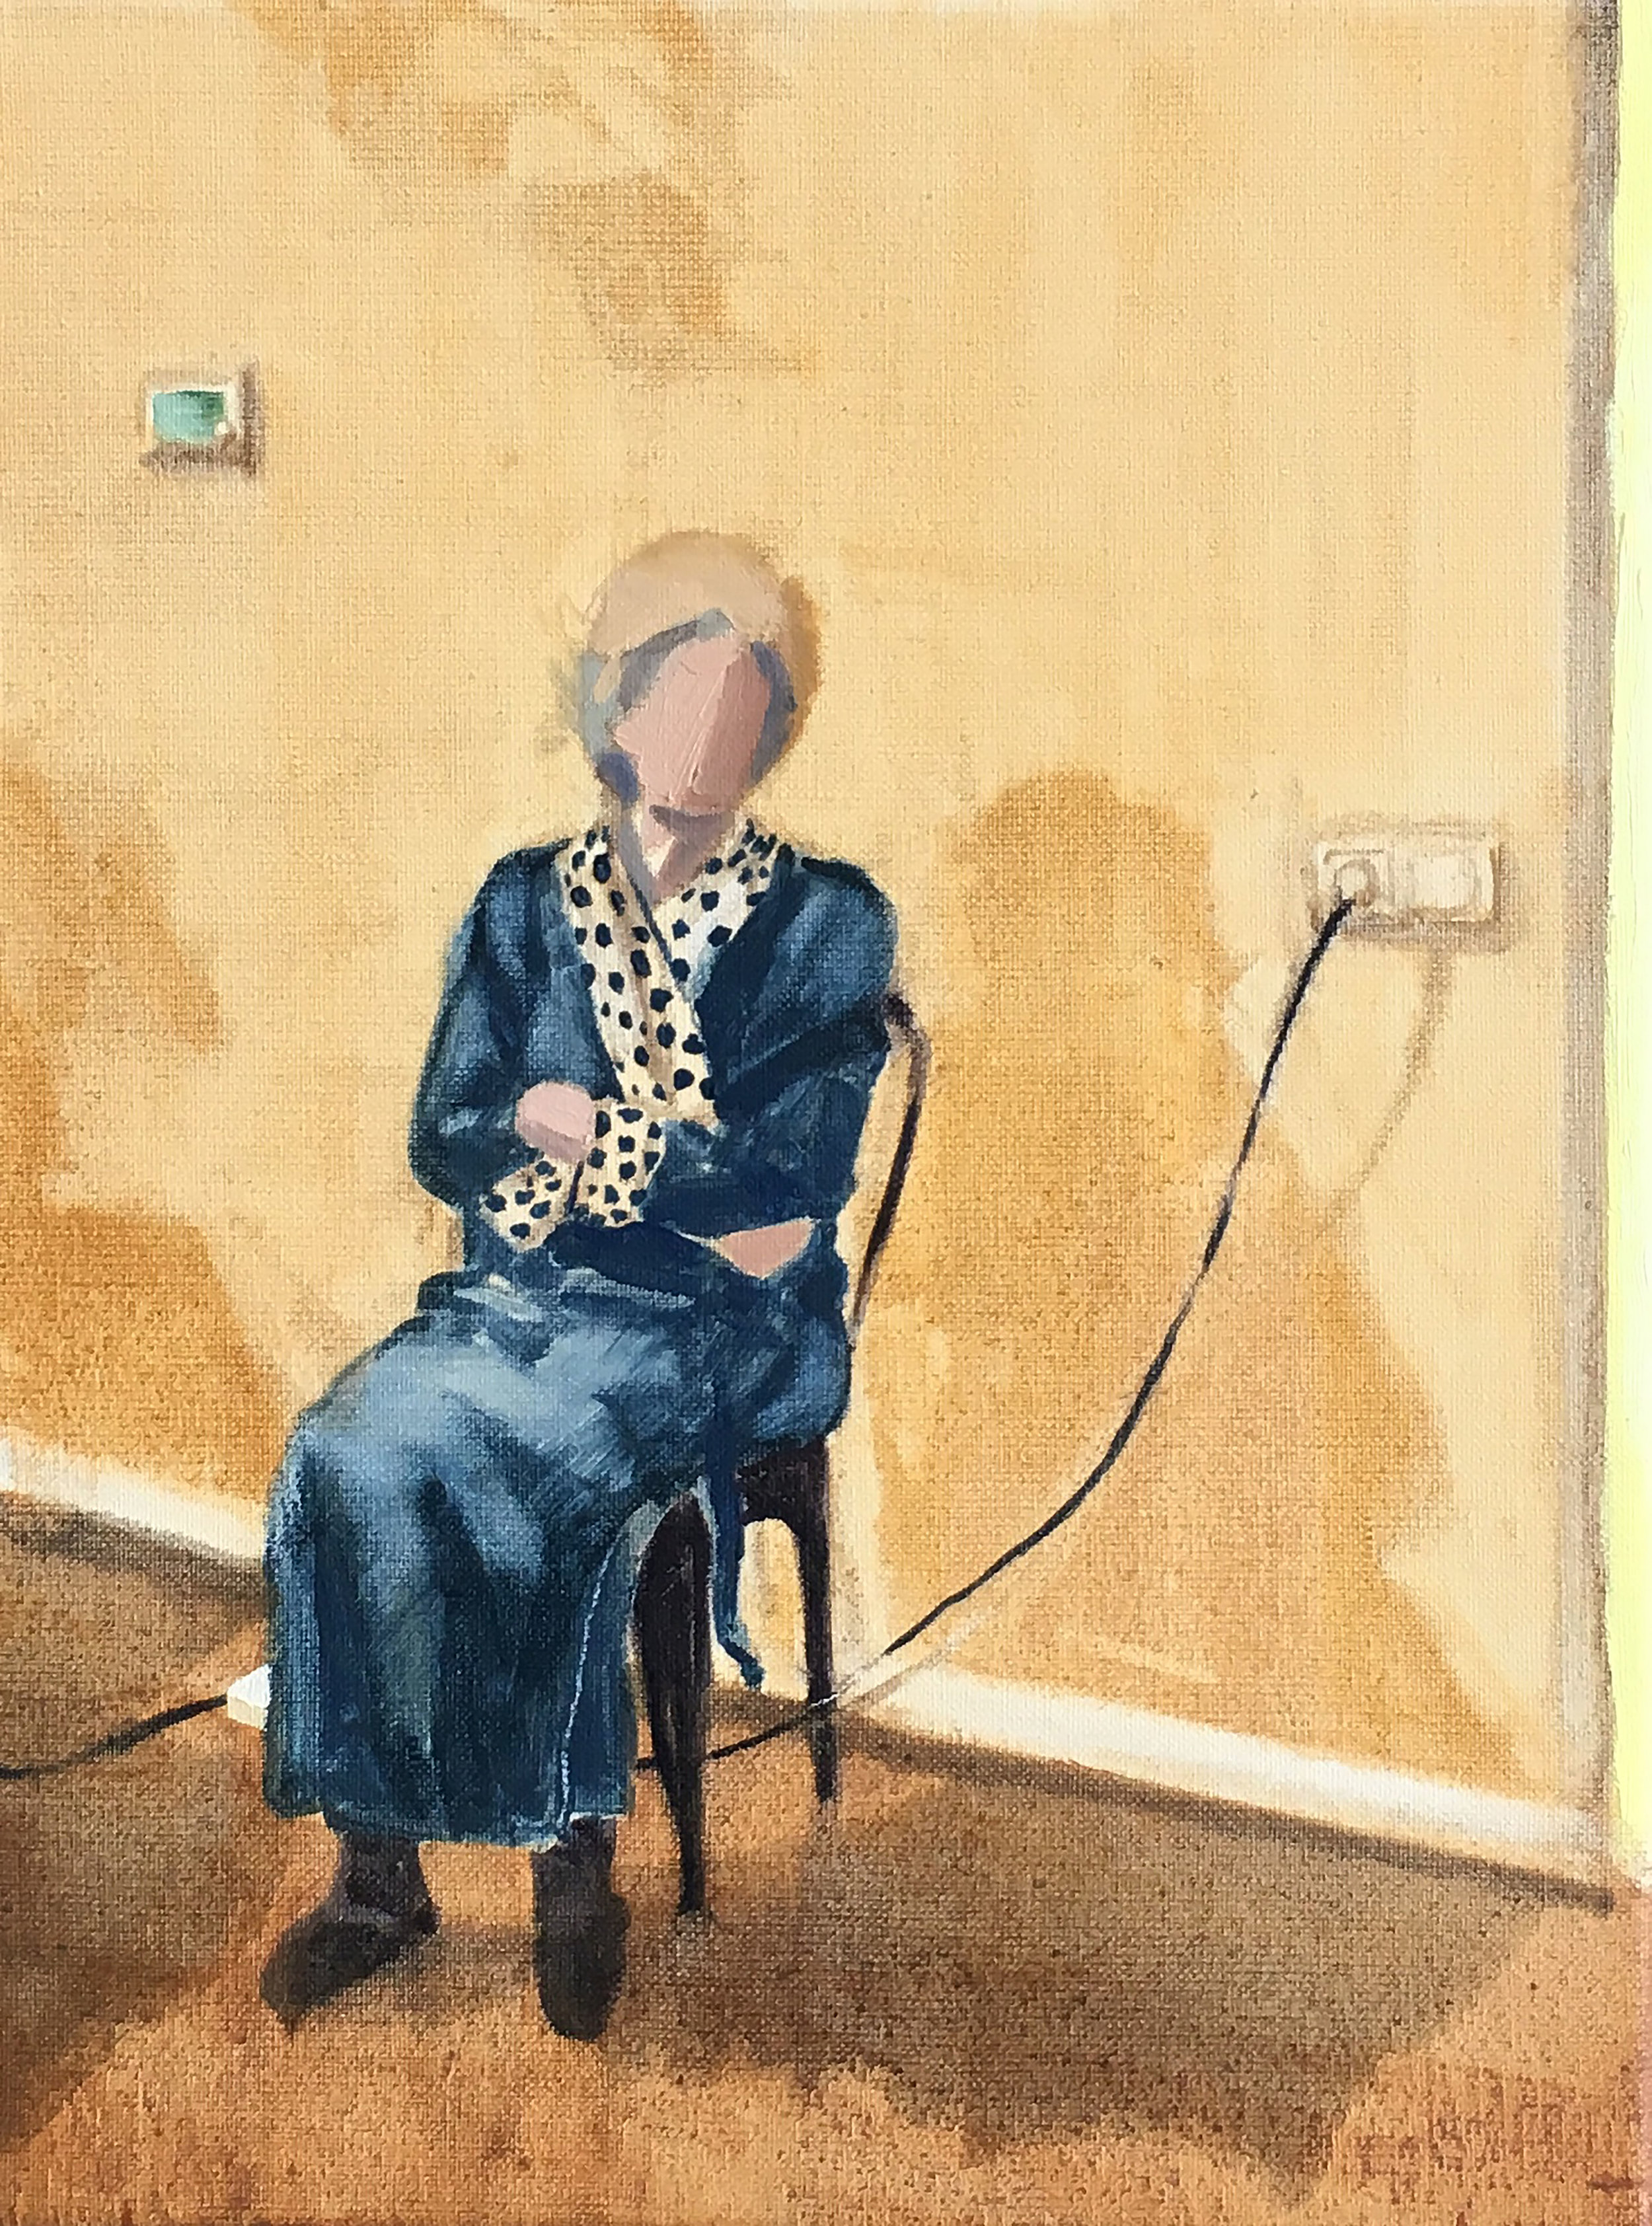 Grandma Connected, oil on canvas, 30x40 cm, 2019  (In Private Collection)